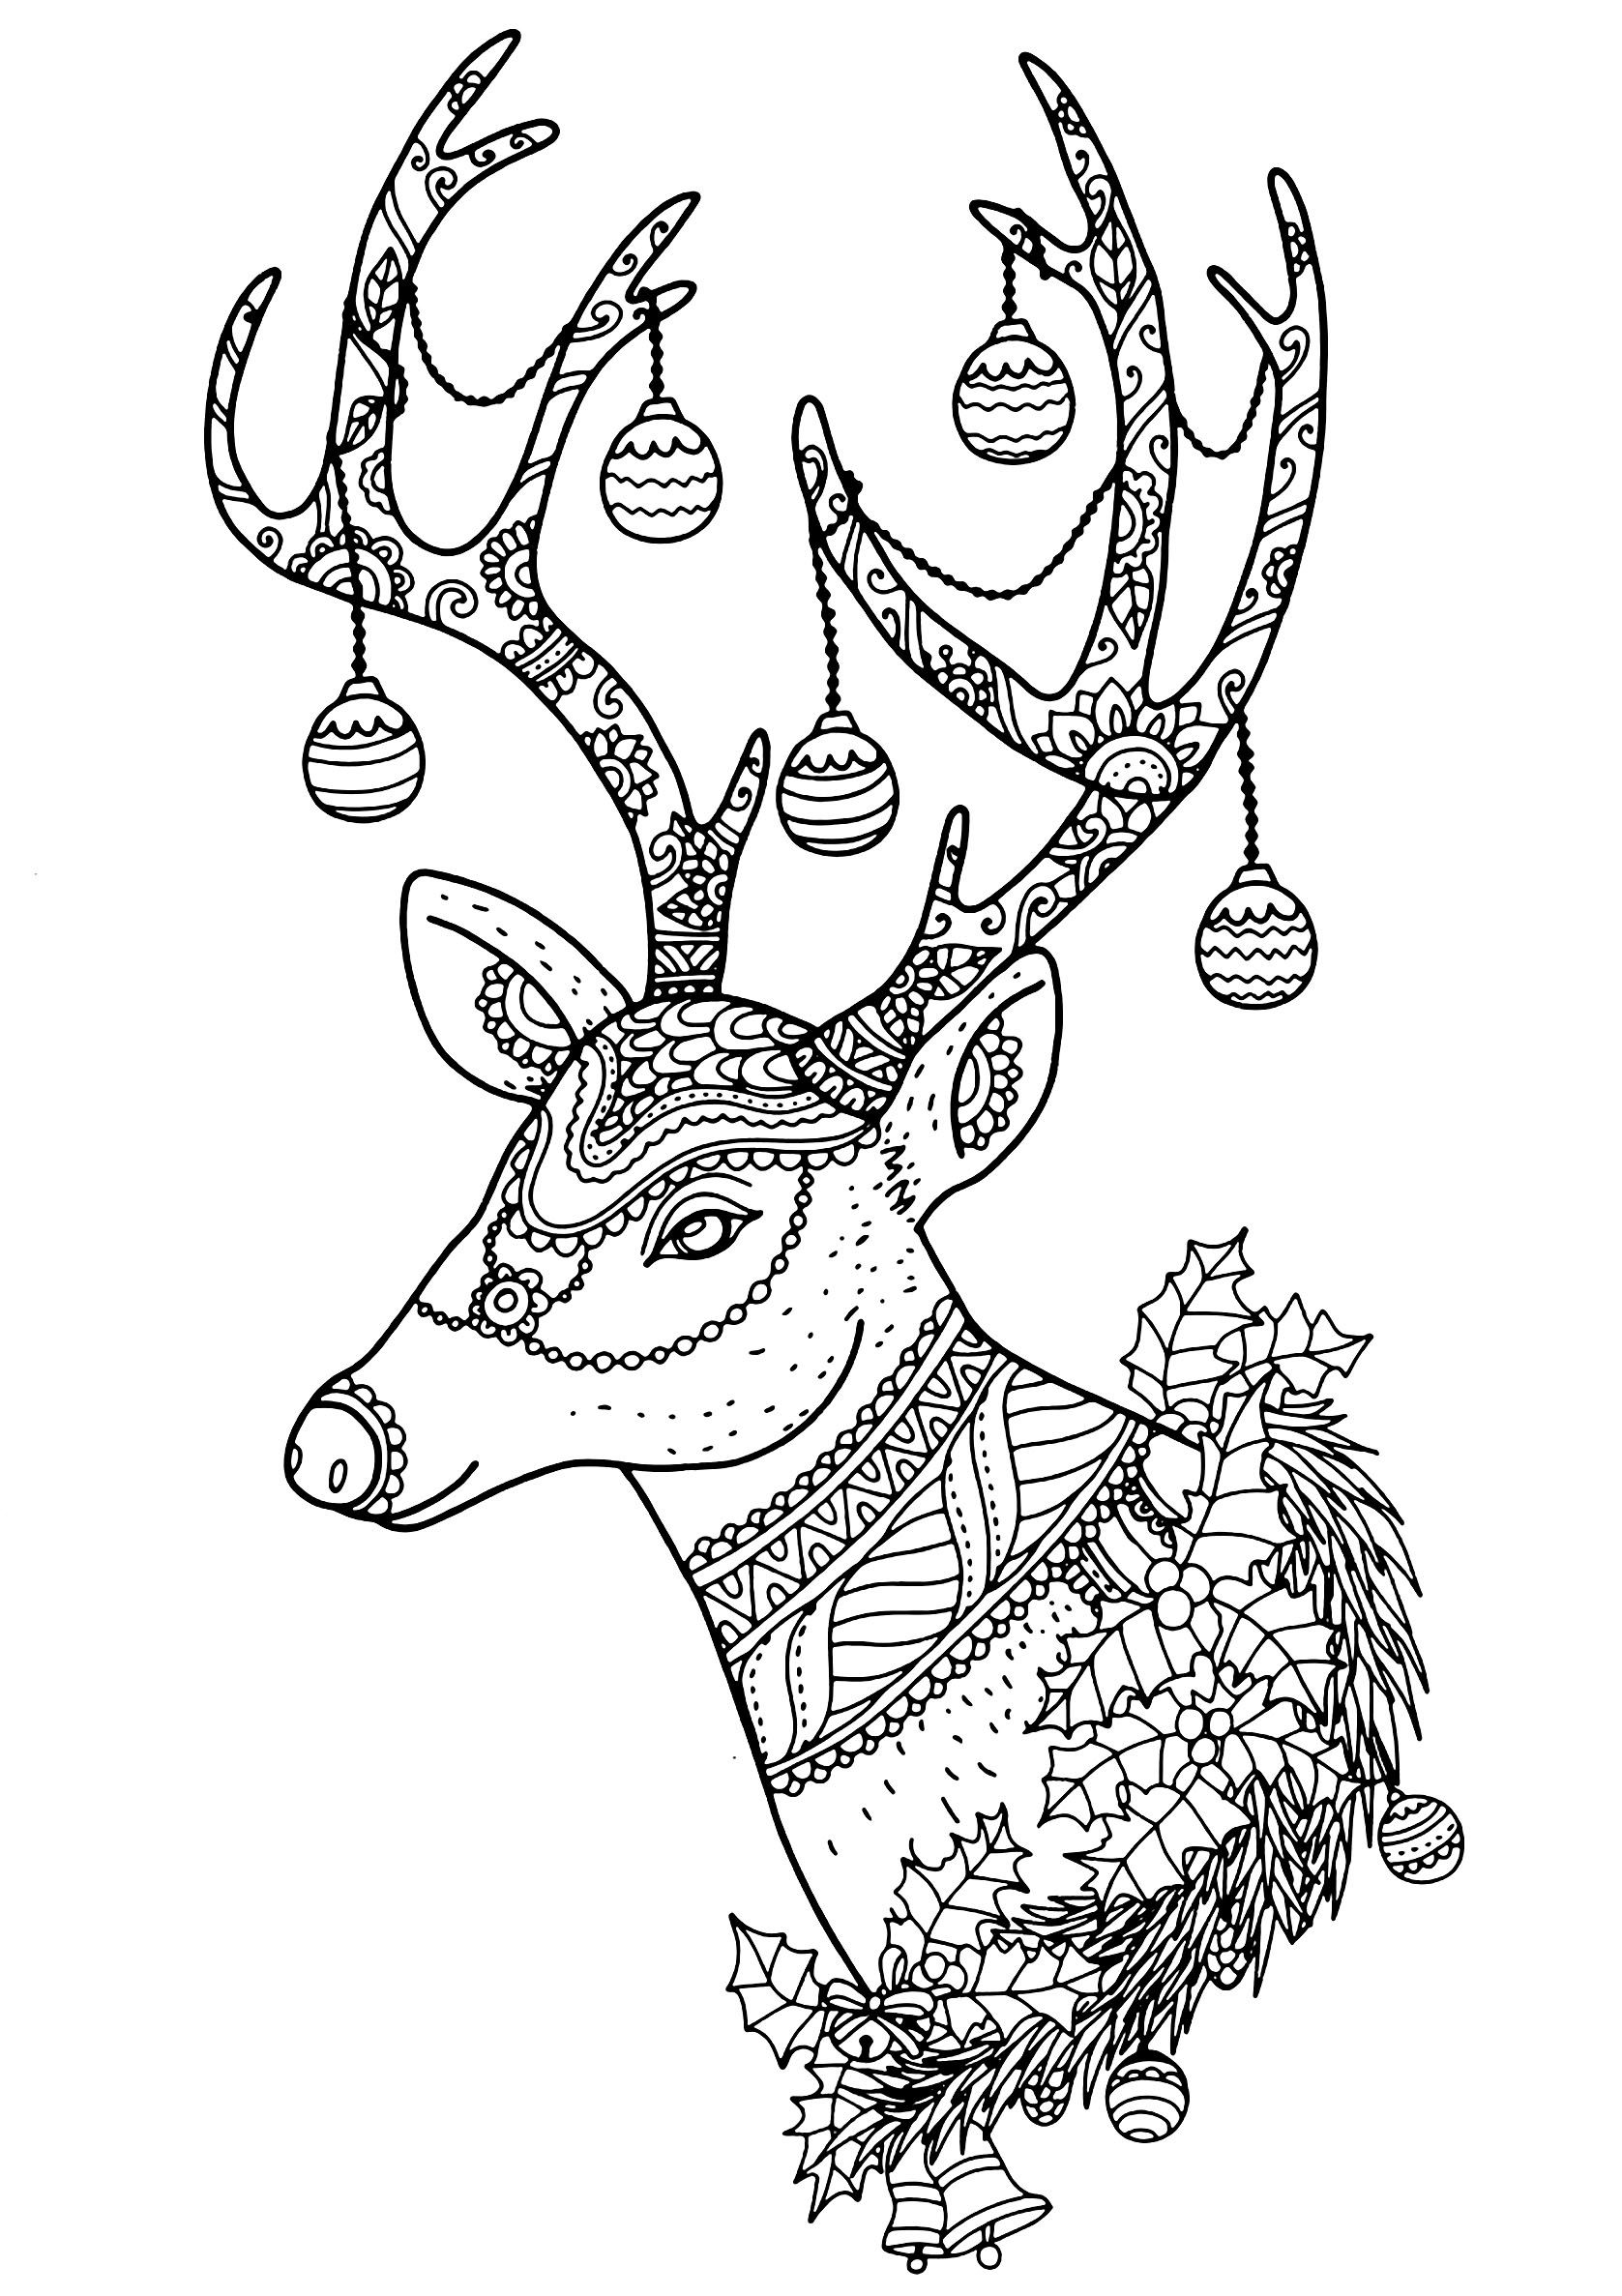 Best Of Reindeer Page To Color Download Christmas Reindeer Nontachai Hengtrag Christmas Coloring Sheets Christmas Tree Coloring Page Christmas Coloring Pages